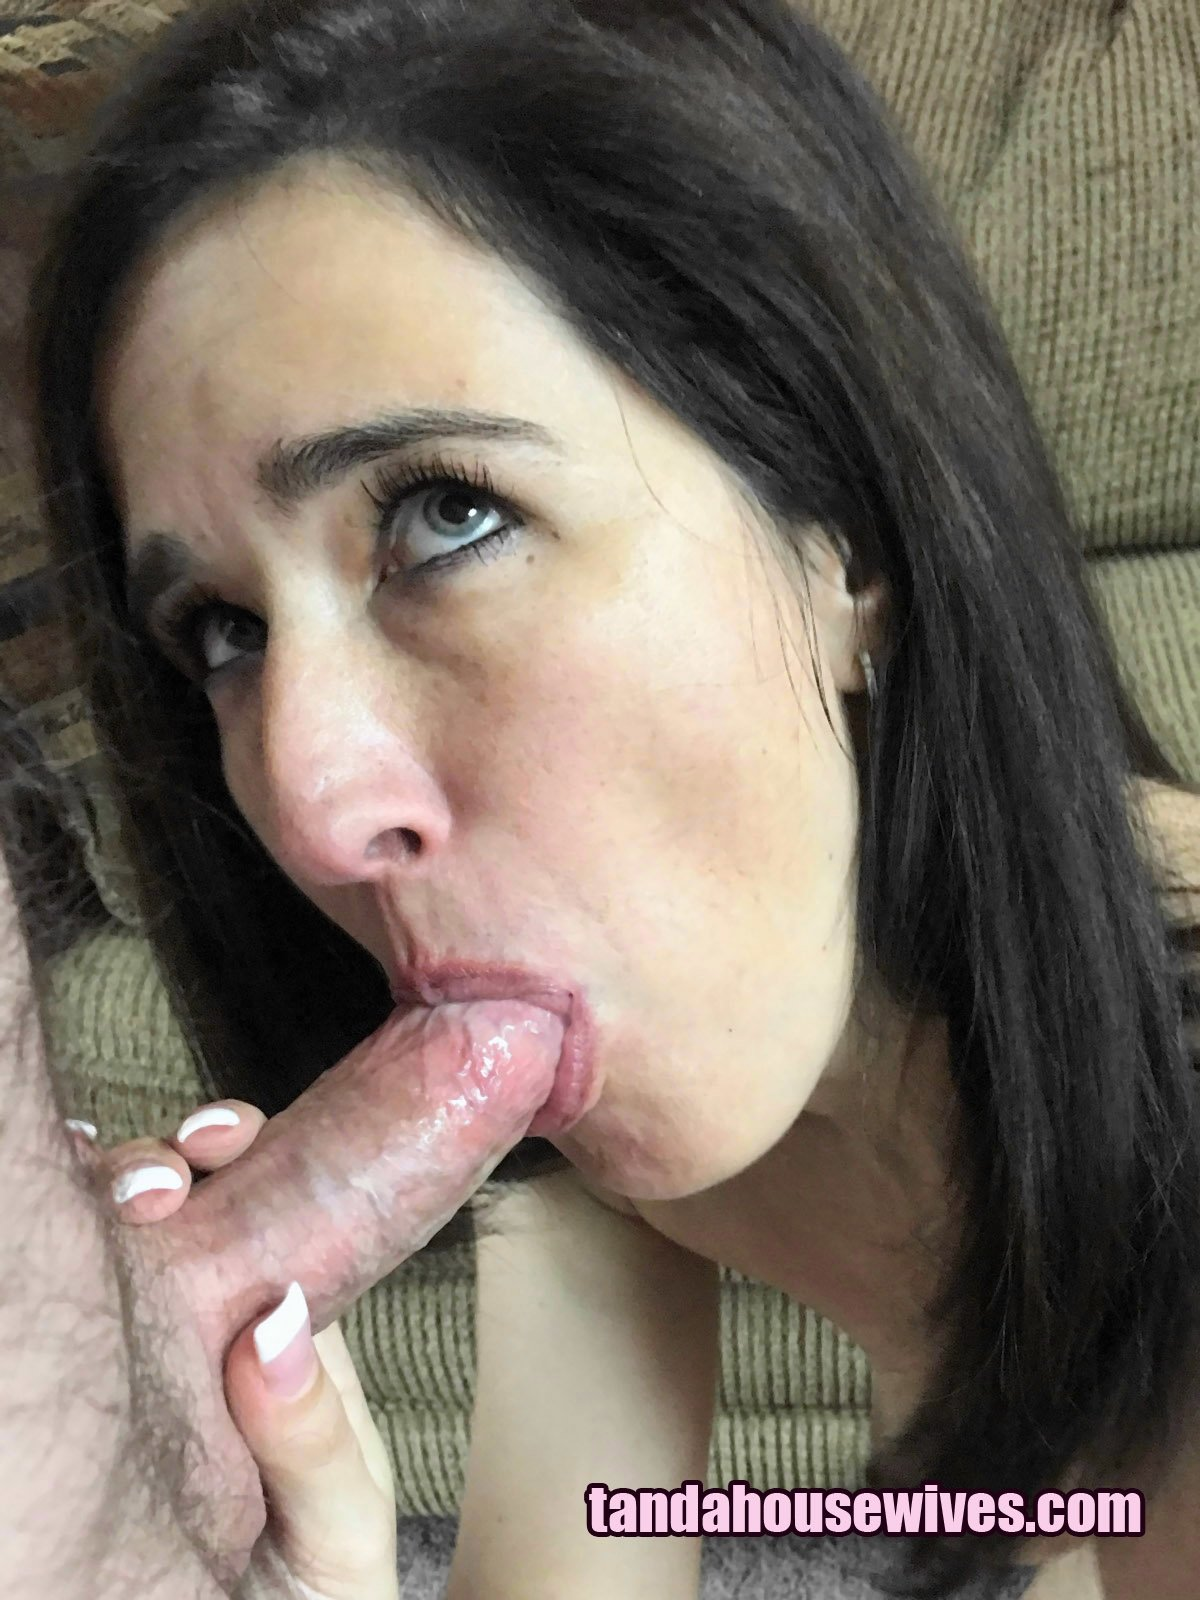 White girl gives the best head i ever had and swallowed it all